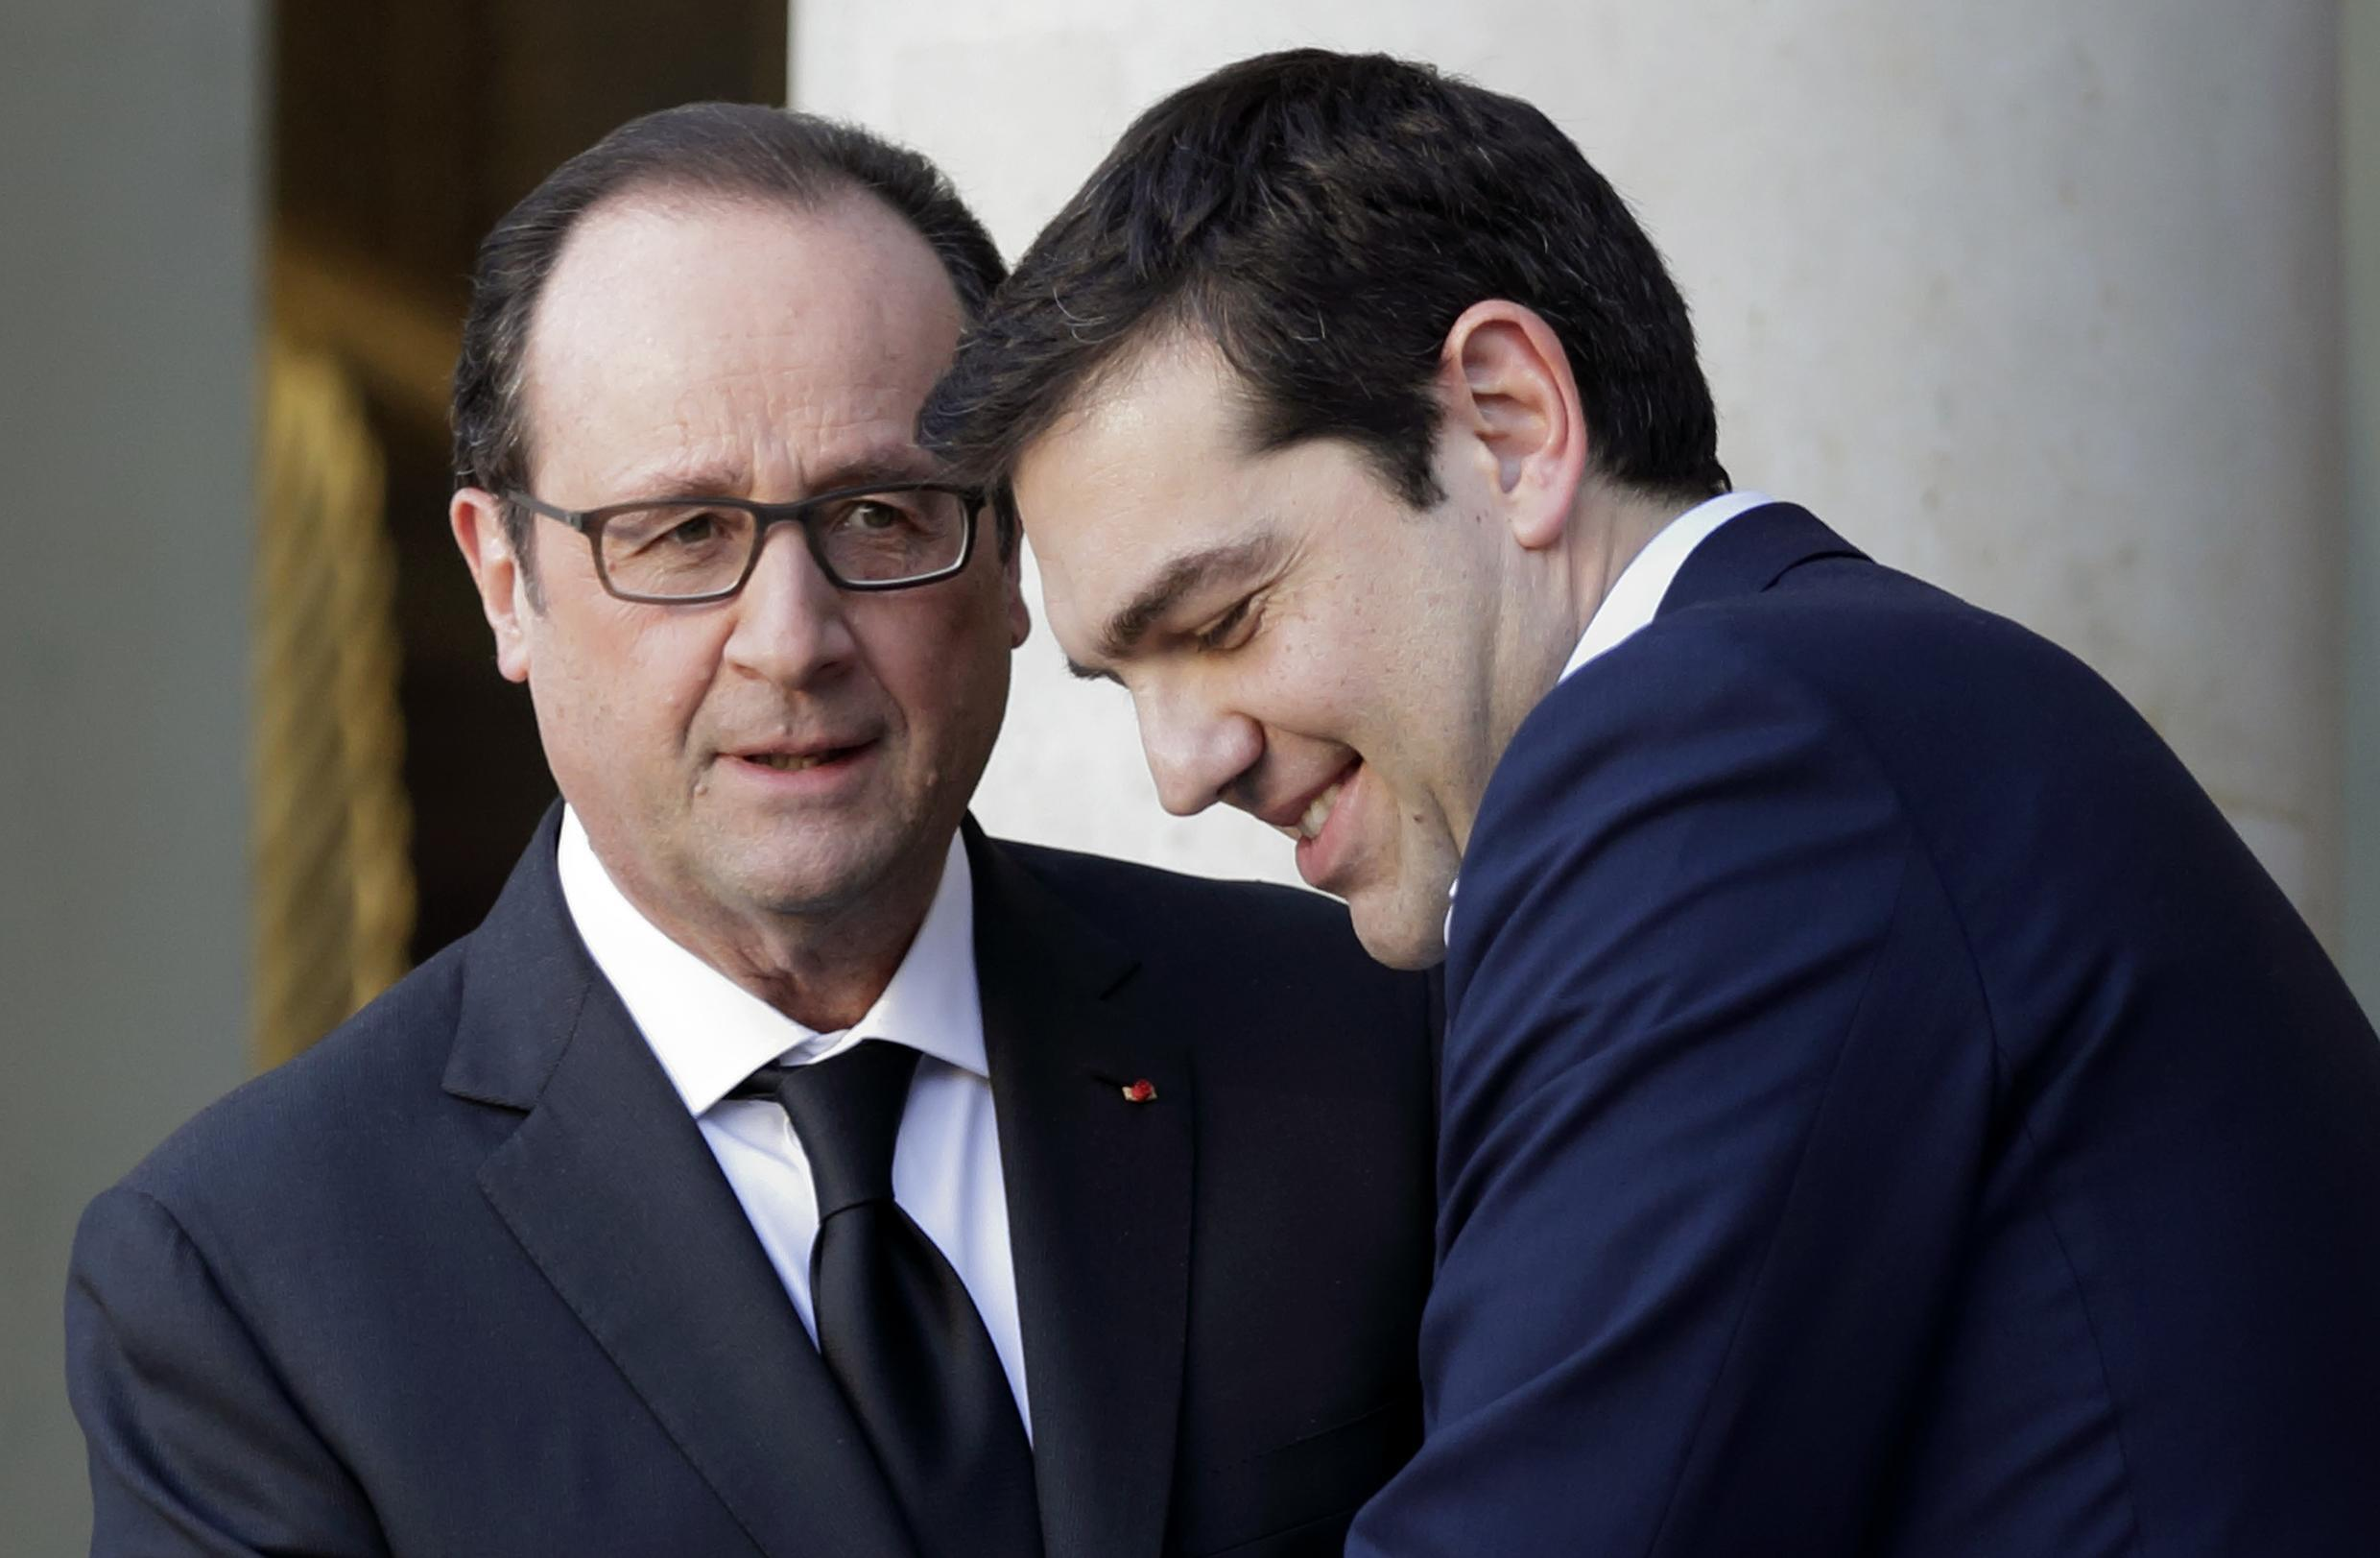 French President François Hollande with Greek Prime Minister Alexis Tsipras